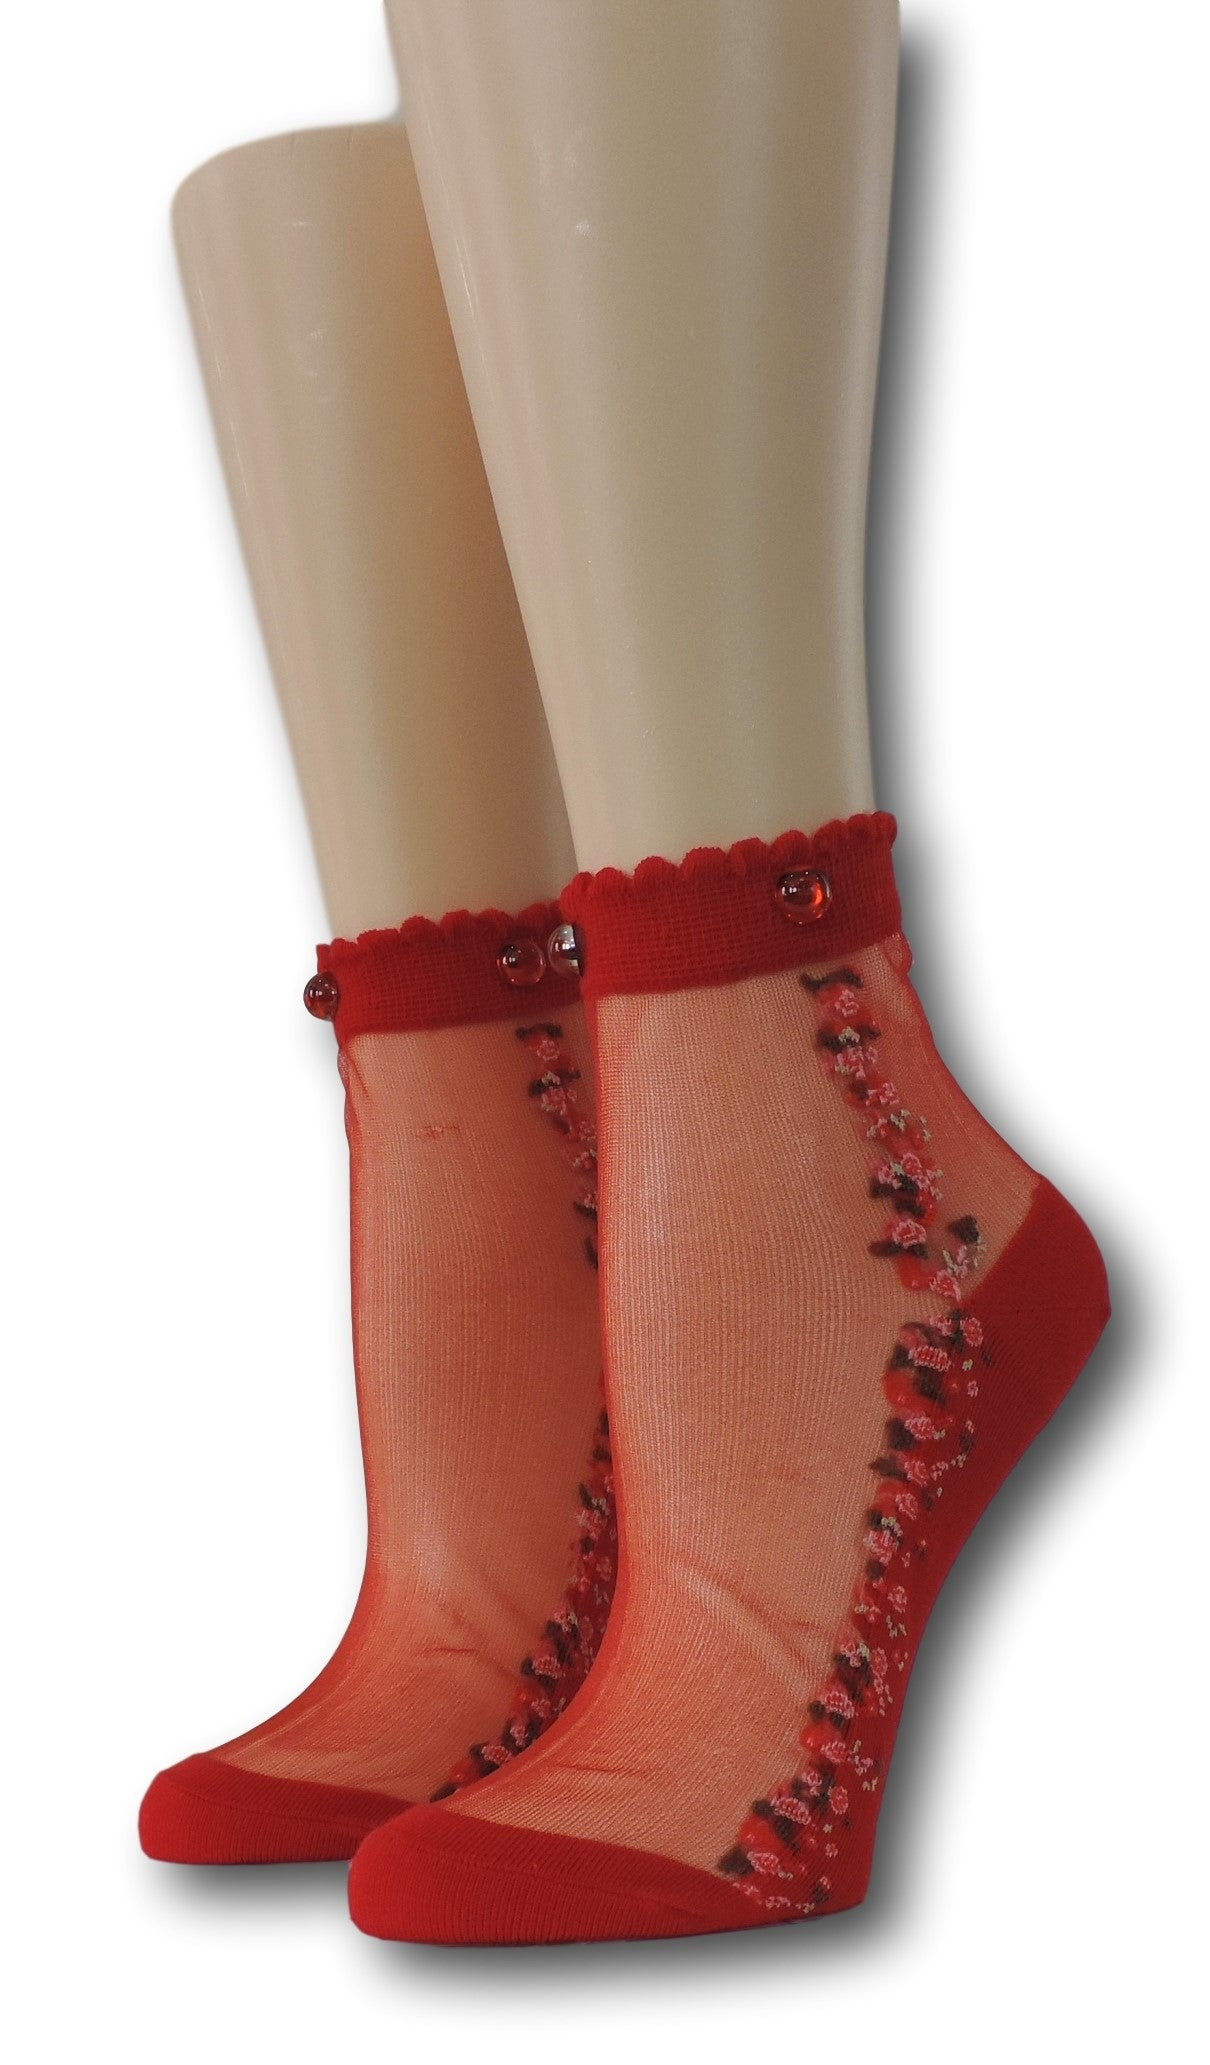 Red Blooming Sheer Socks with beads